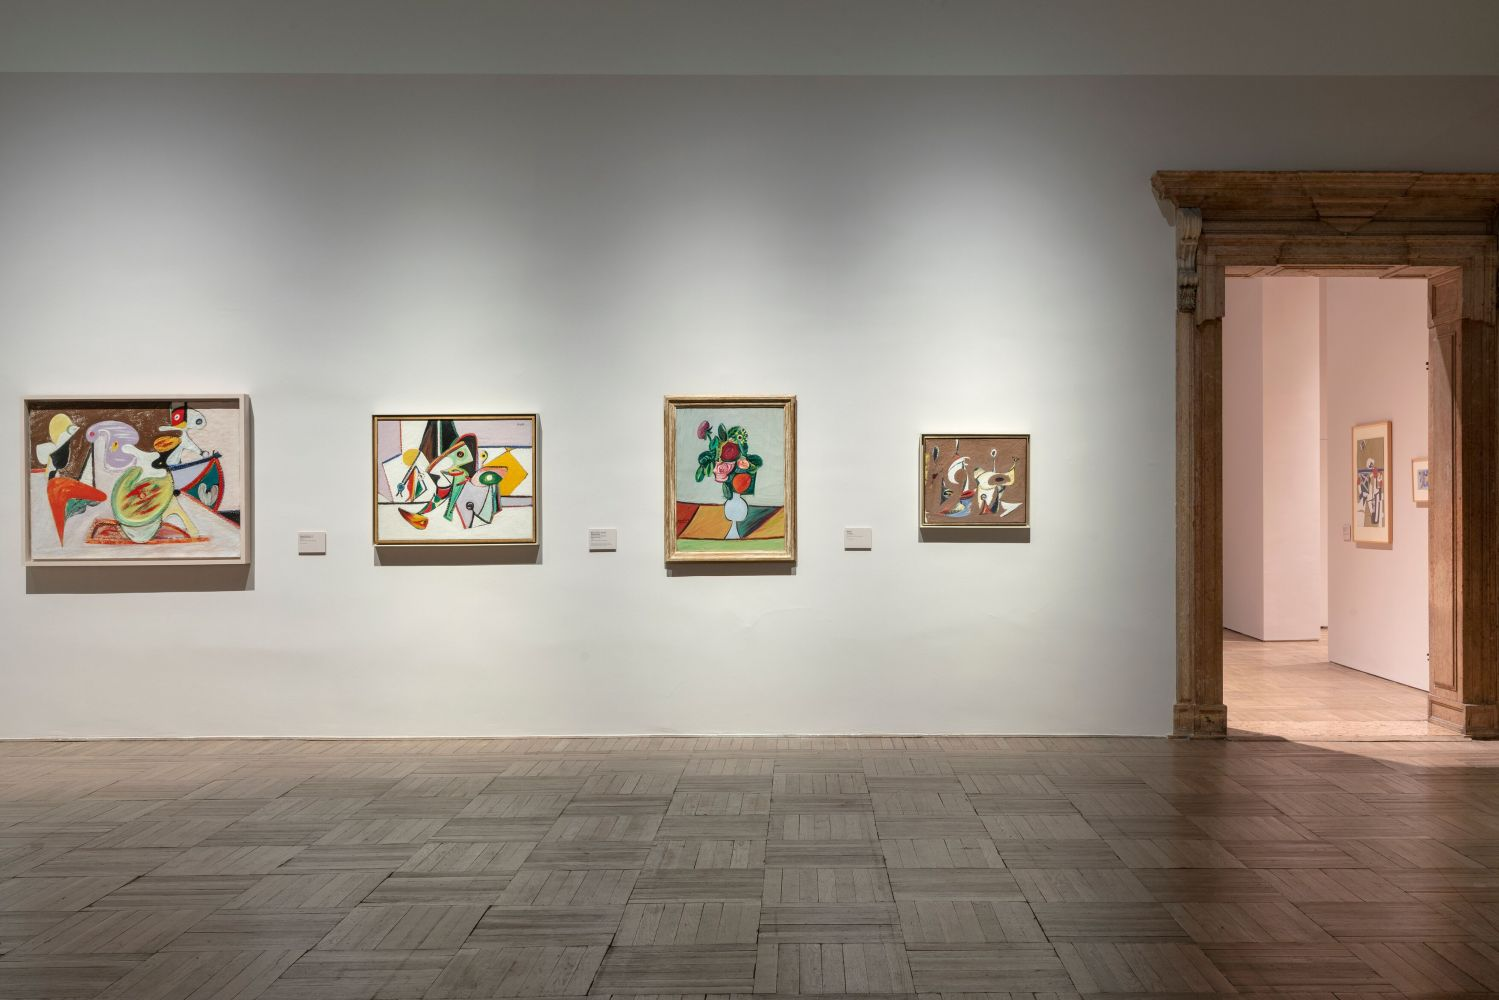 Installation photograph showing paintings by Gorky from the mid to late 1930s